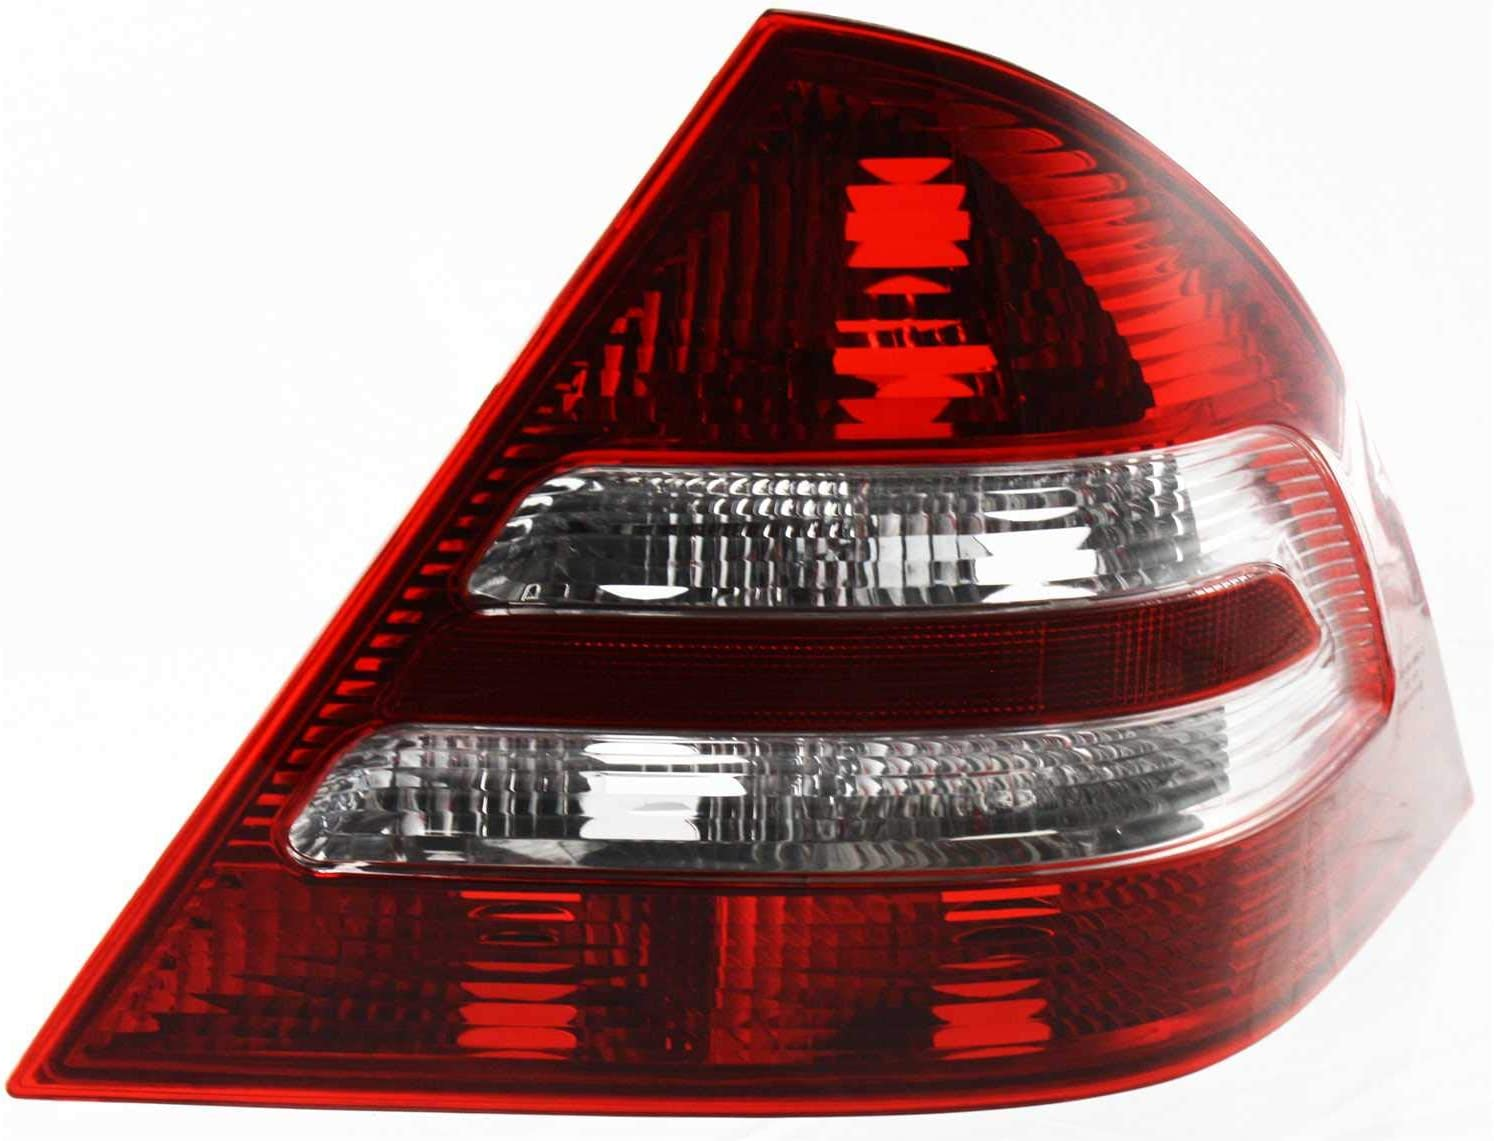 [QNCB_7524]  Amazon.com: Tail Light Lens and Housing Compatible with 2005-2007 Mercedes  Benz C230 Sedan Passenger Side: Automotive | Mercedes Benz C280 4matic 2007 Side Markers Repair Wire Harness |  | Amazon.com